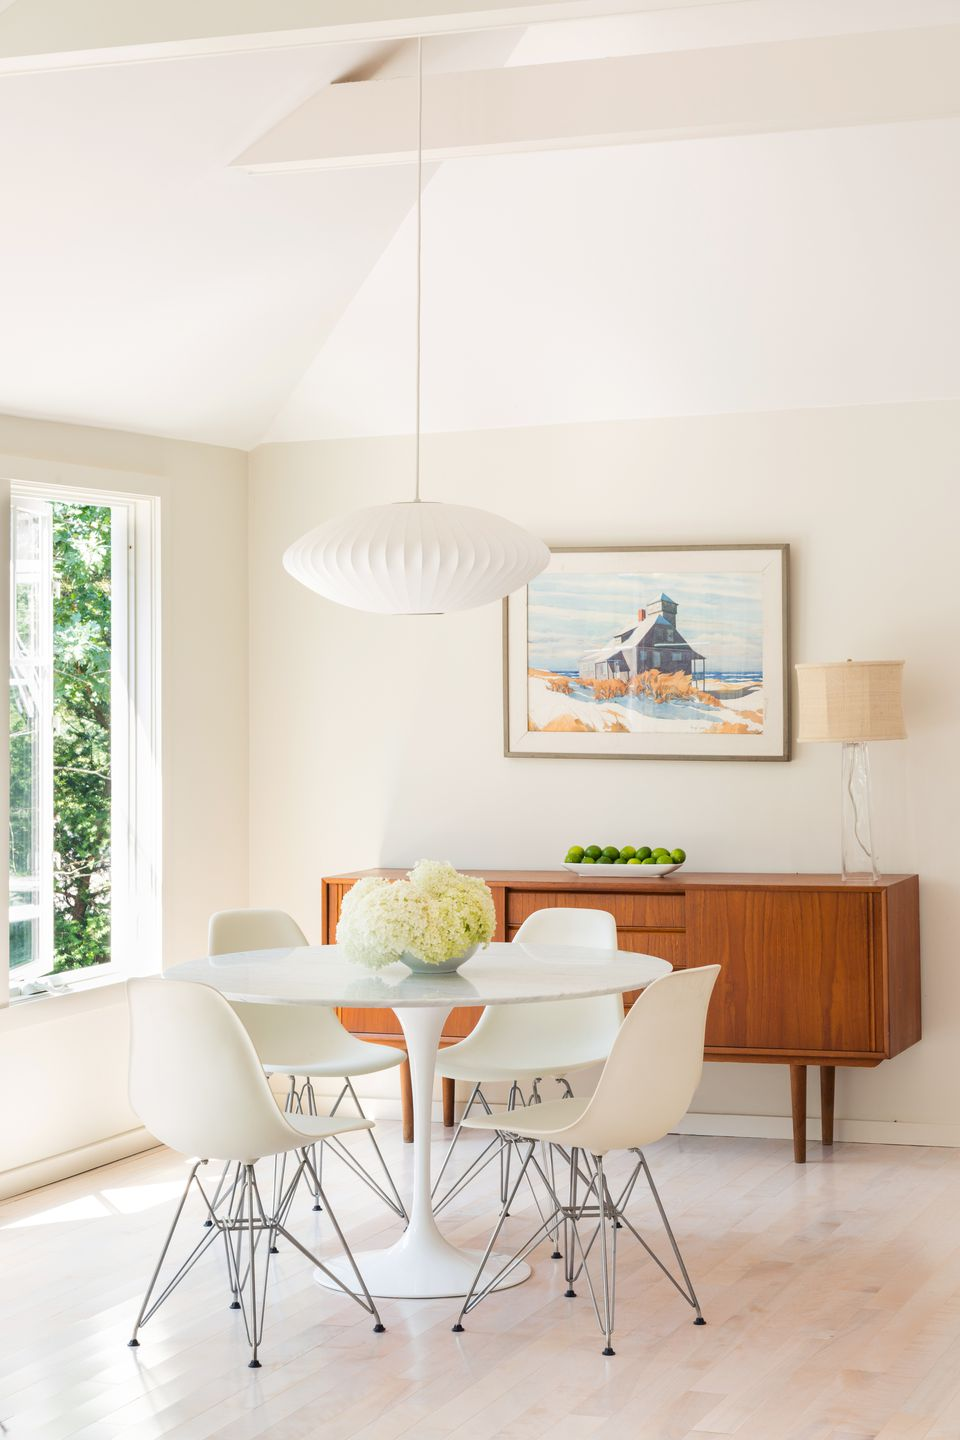 """Hovering over the Eero Saarinen dining table and Eames chairs, an iconic mid-century Nelson Saucer Bubble Pendant by Herman Miller is the only exposed light fixture in the main living area other than table lamps. """"All of the rest recede into the ceiling,"""" says Alison Alessi of A3 Architects."""